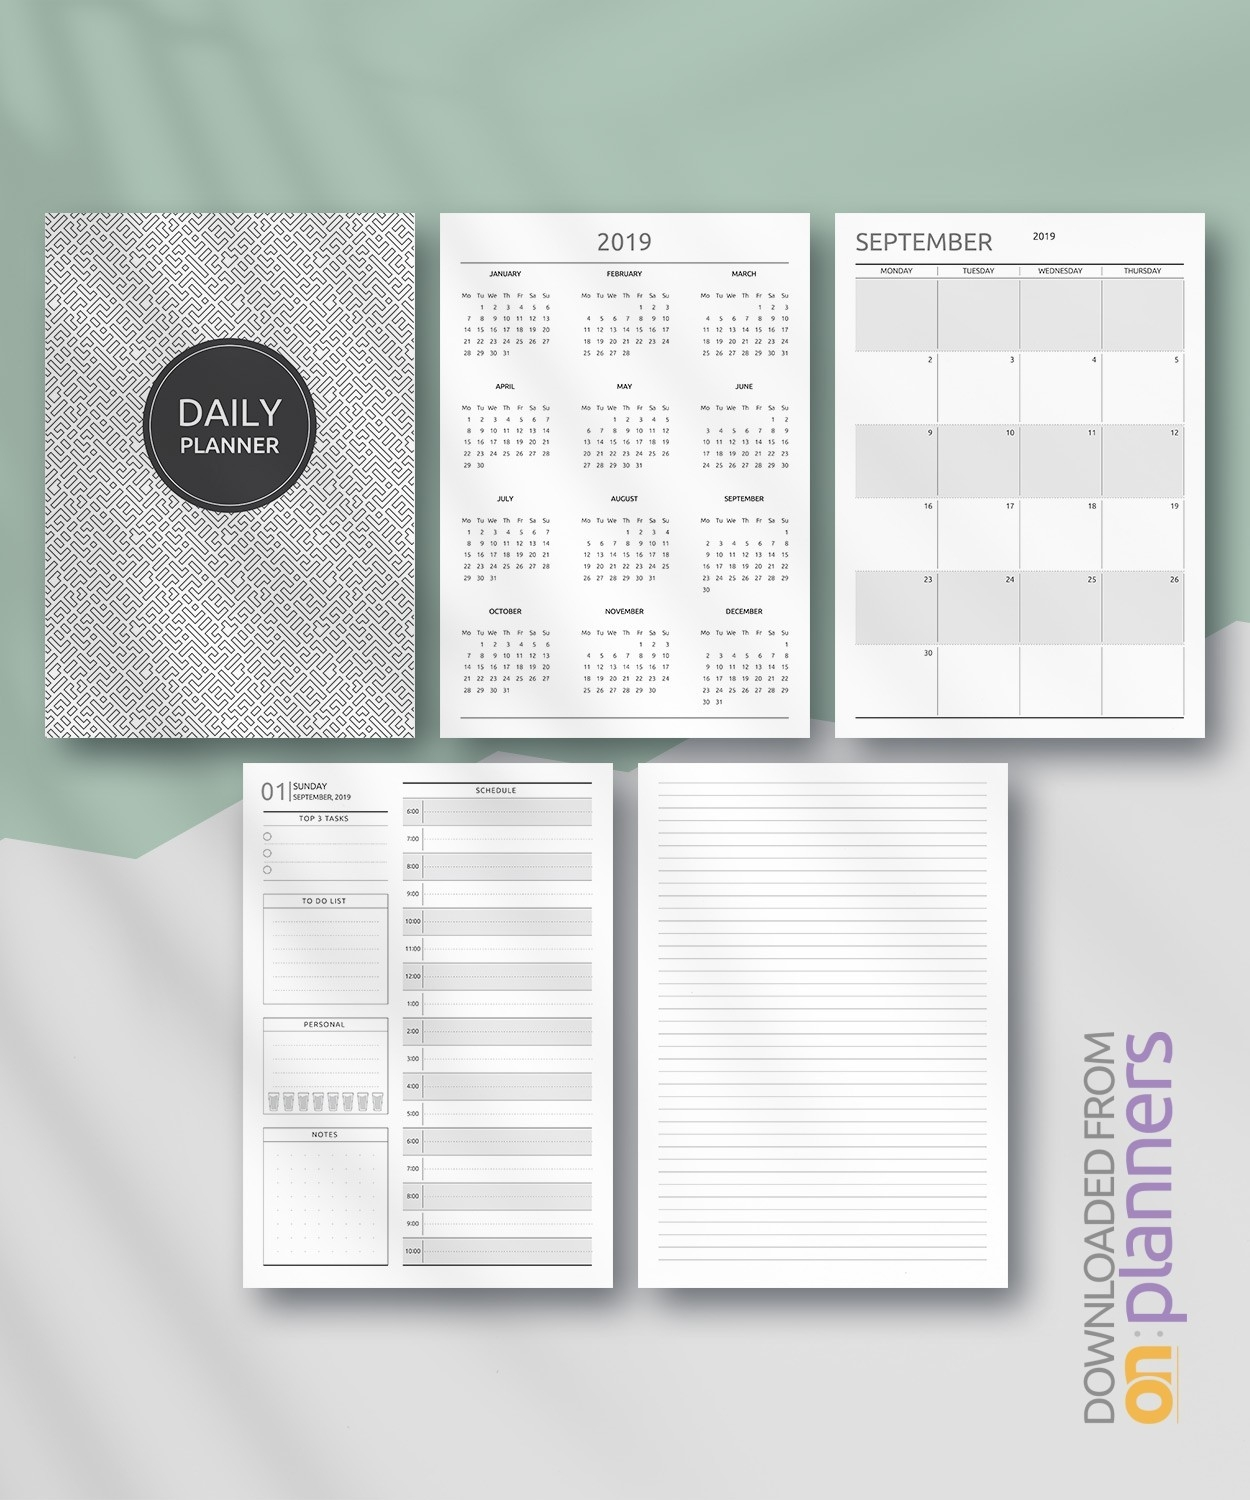 Free Printable Daily Planner - Original Style Pdf Download  26.catholic Daily Planner Template